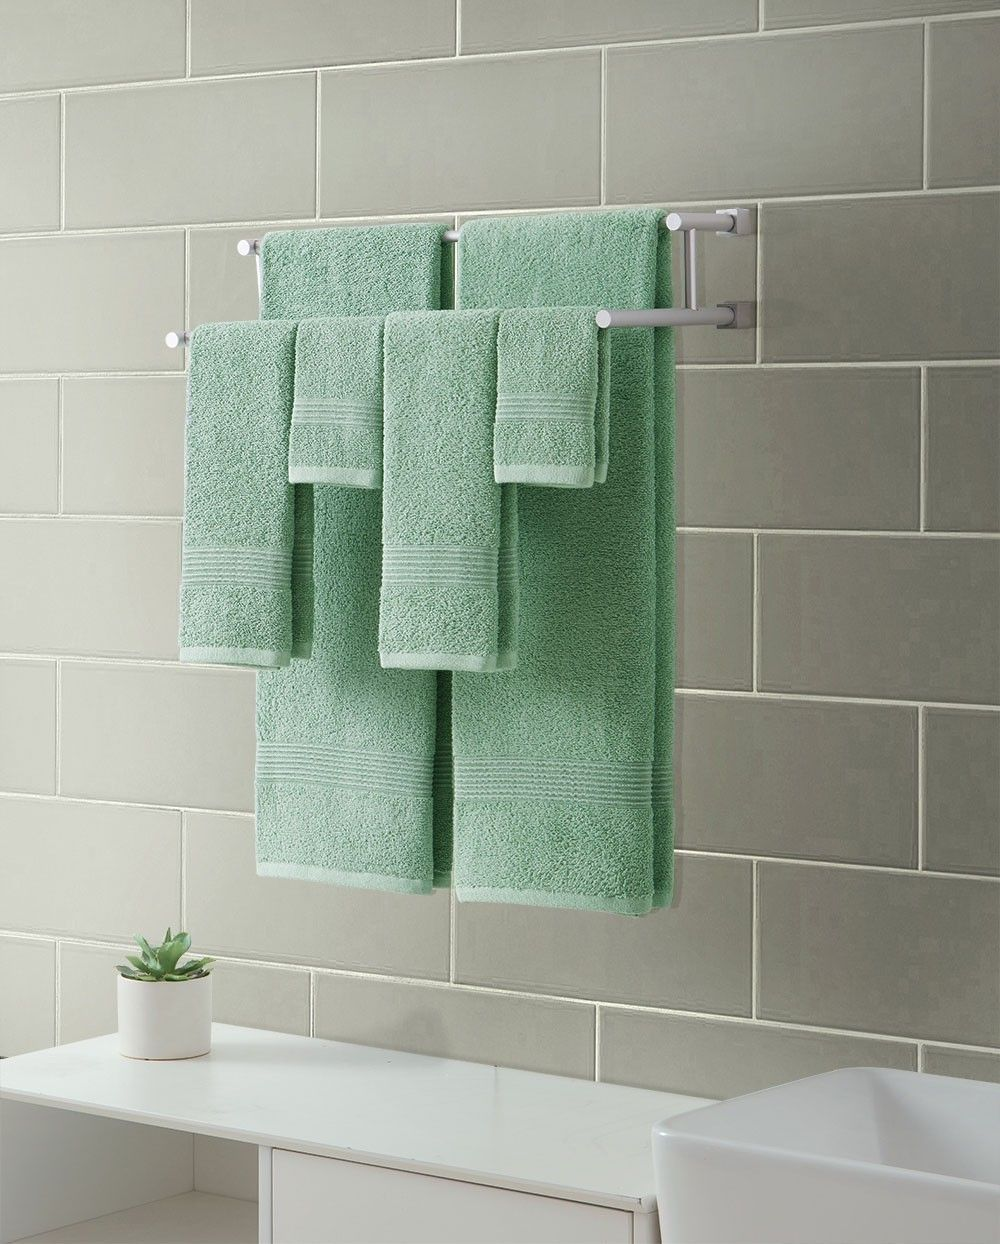 Vcny Ribbed Luxury 12 Piece Bath Towel Set Downtown Collection 100 Cotton Sage Green Discontinued No Longer Available Vcny Towel Set Luxury Towels